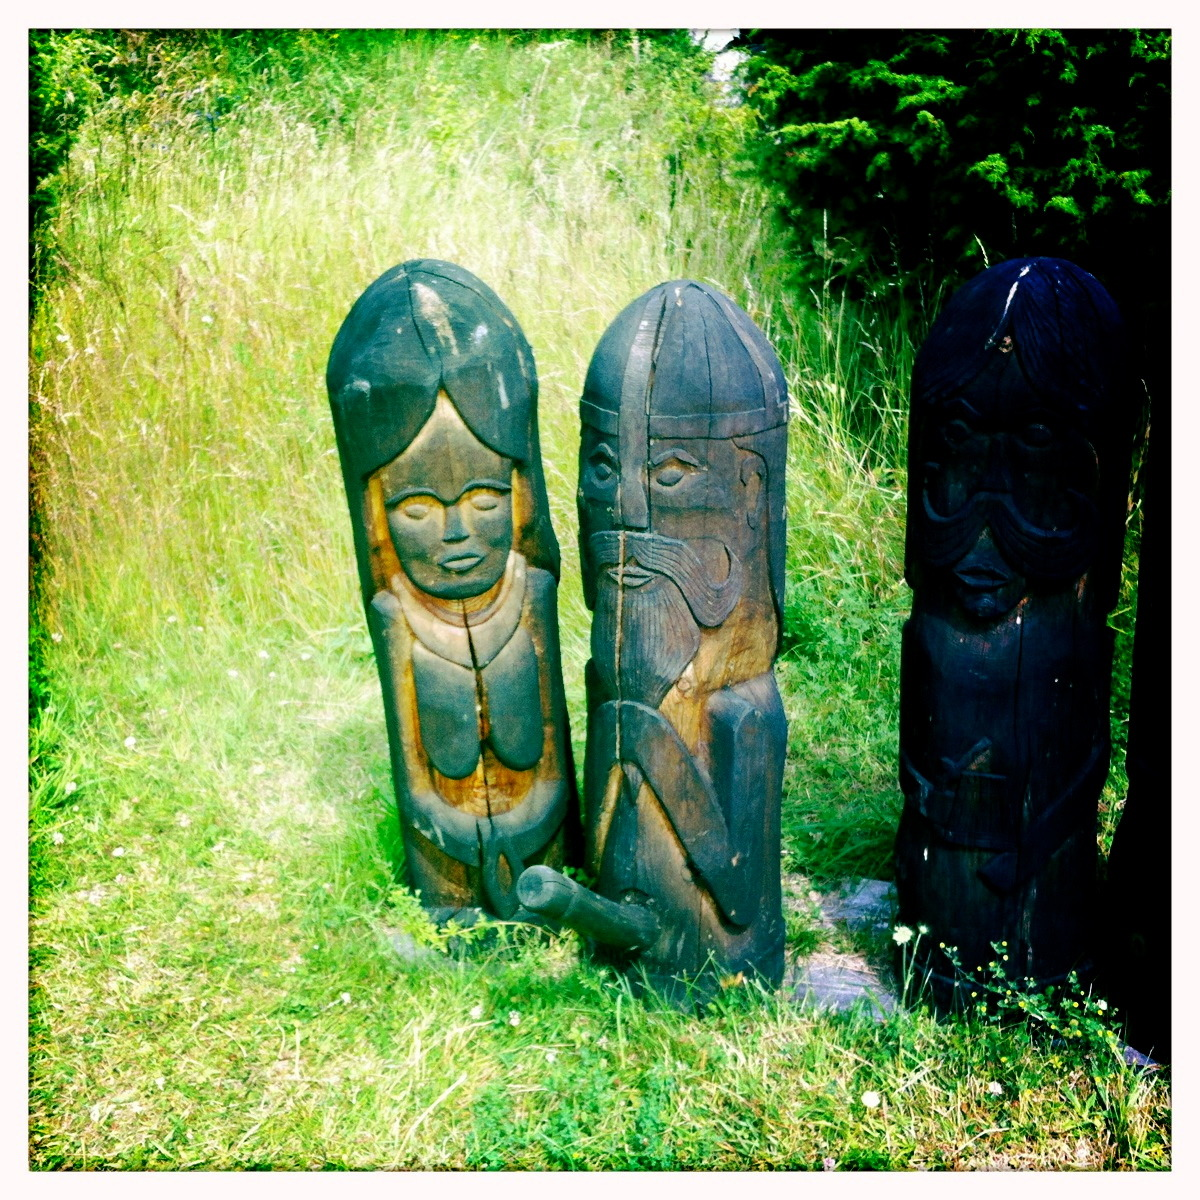 Wooden totems at the Viking village, scene of many awkward family conversations.